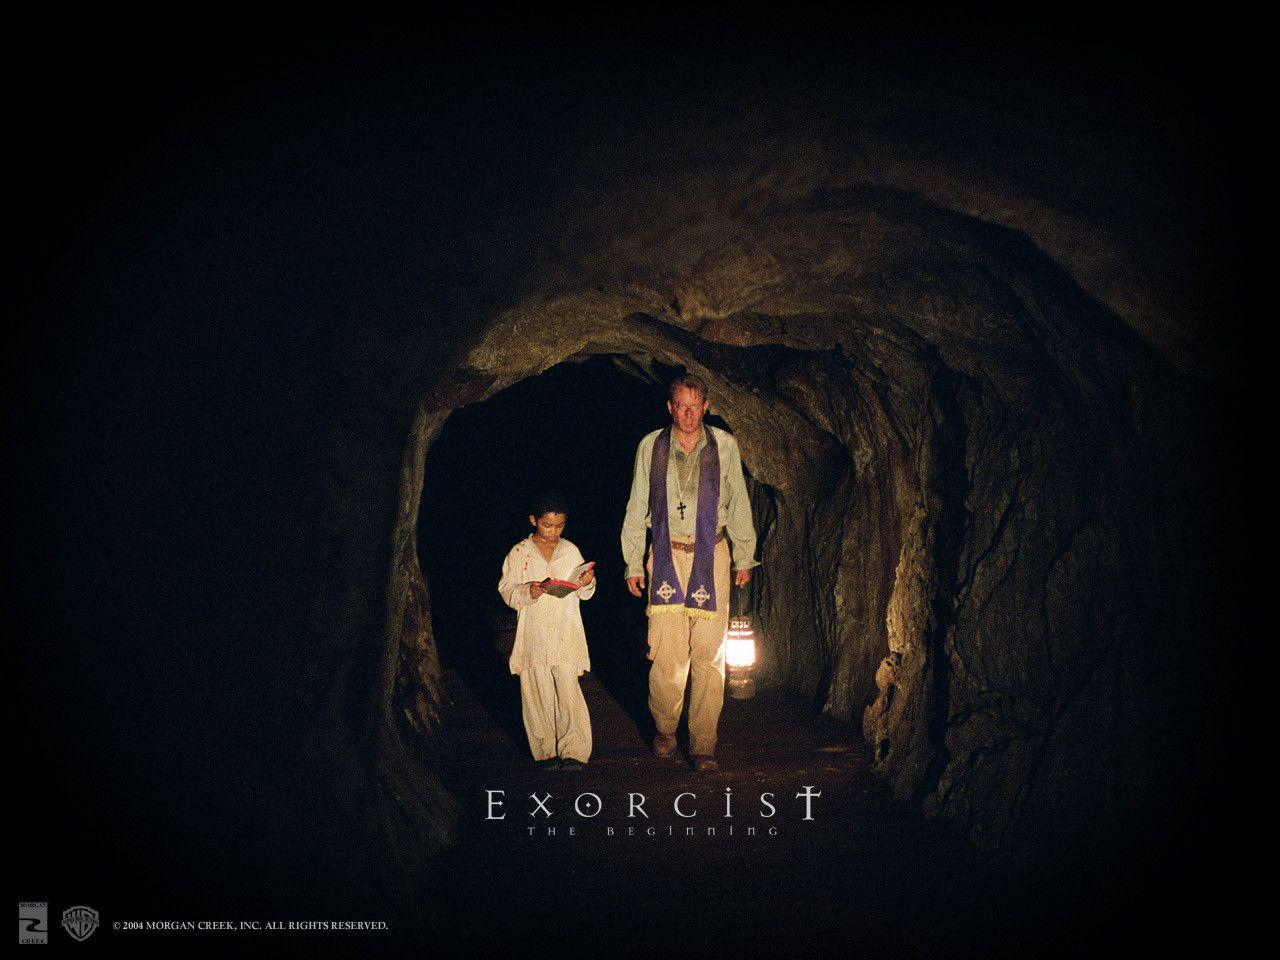 the exorcist wallpaper - photo #19